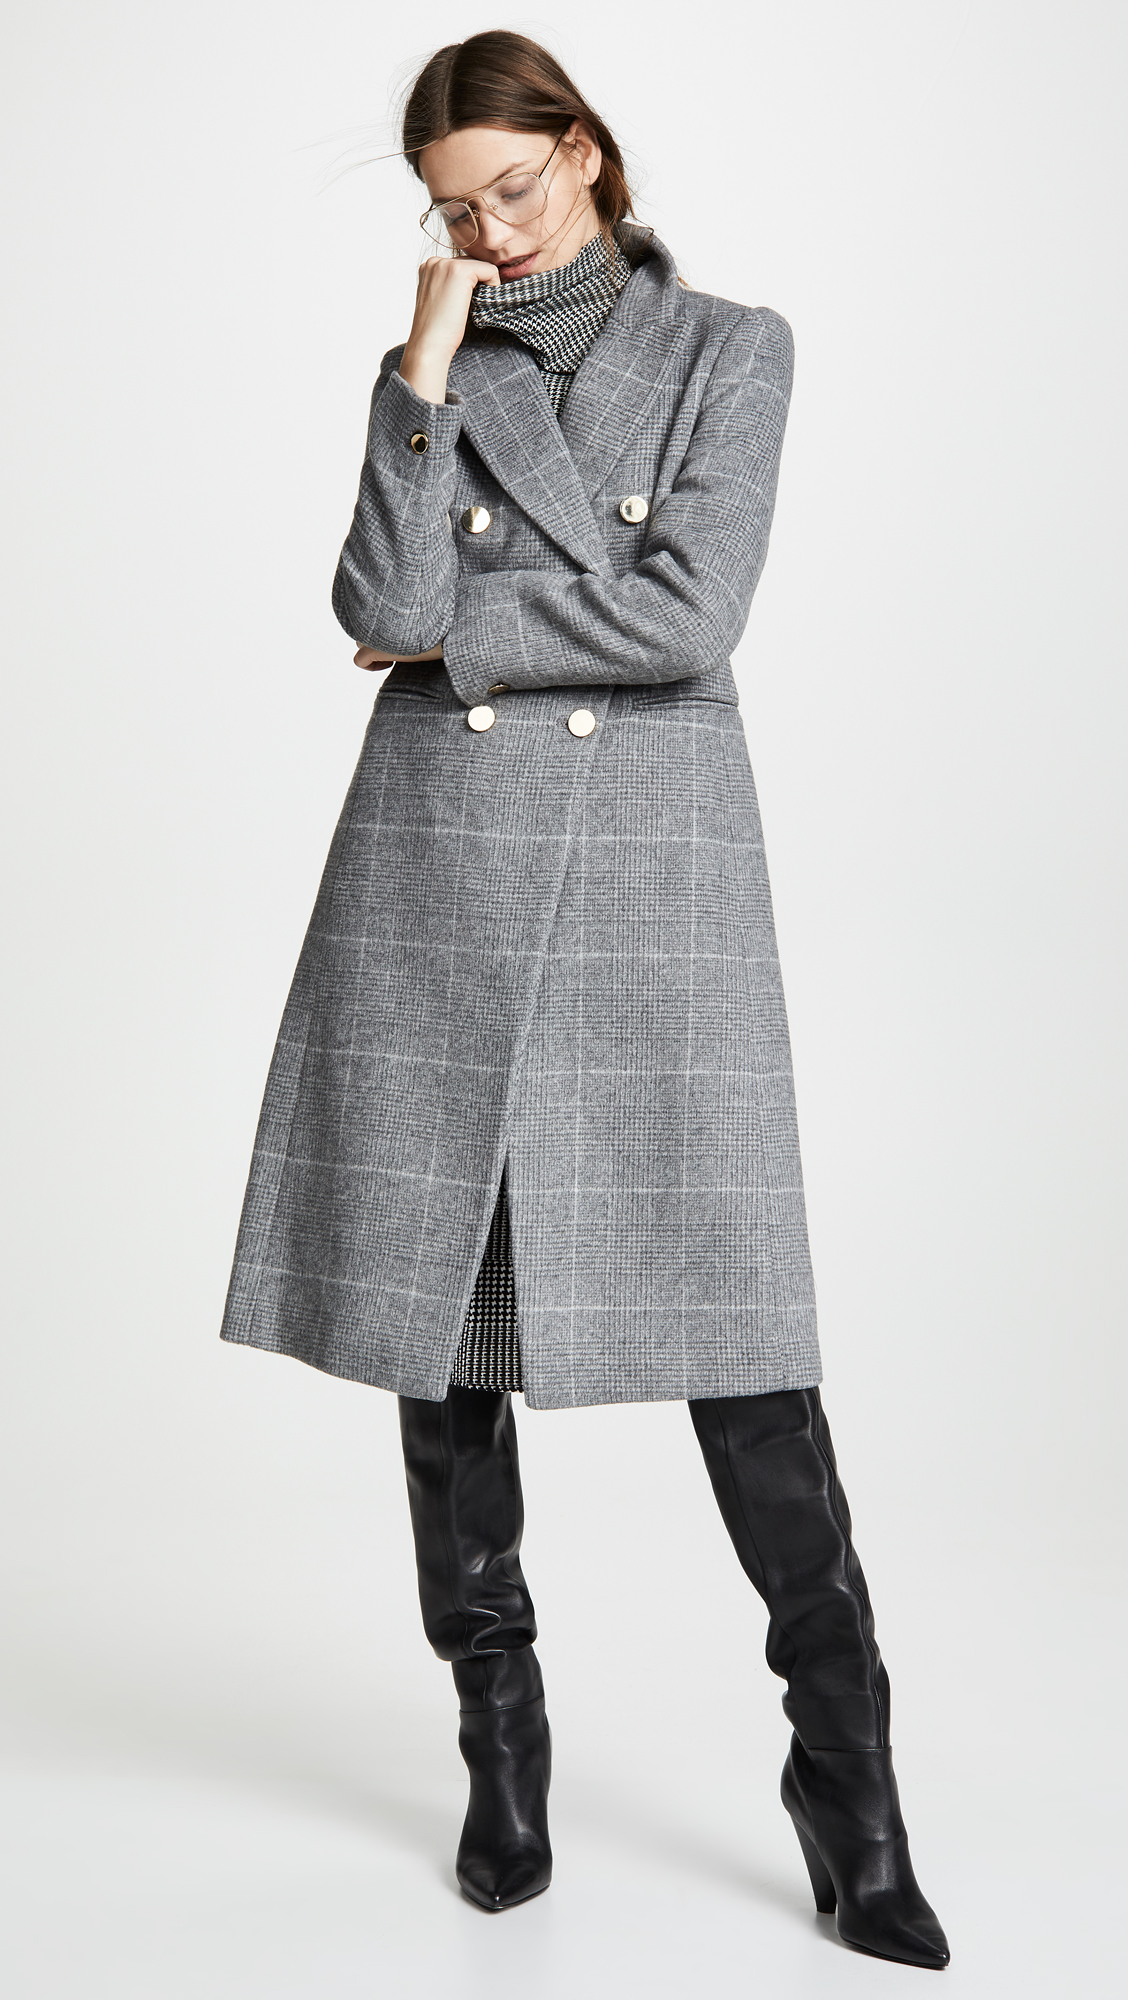 Club Monaco Jemma Plaid Coat